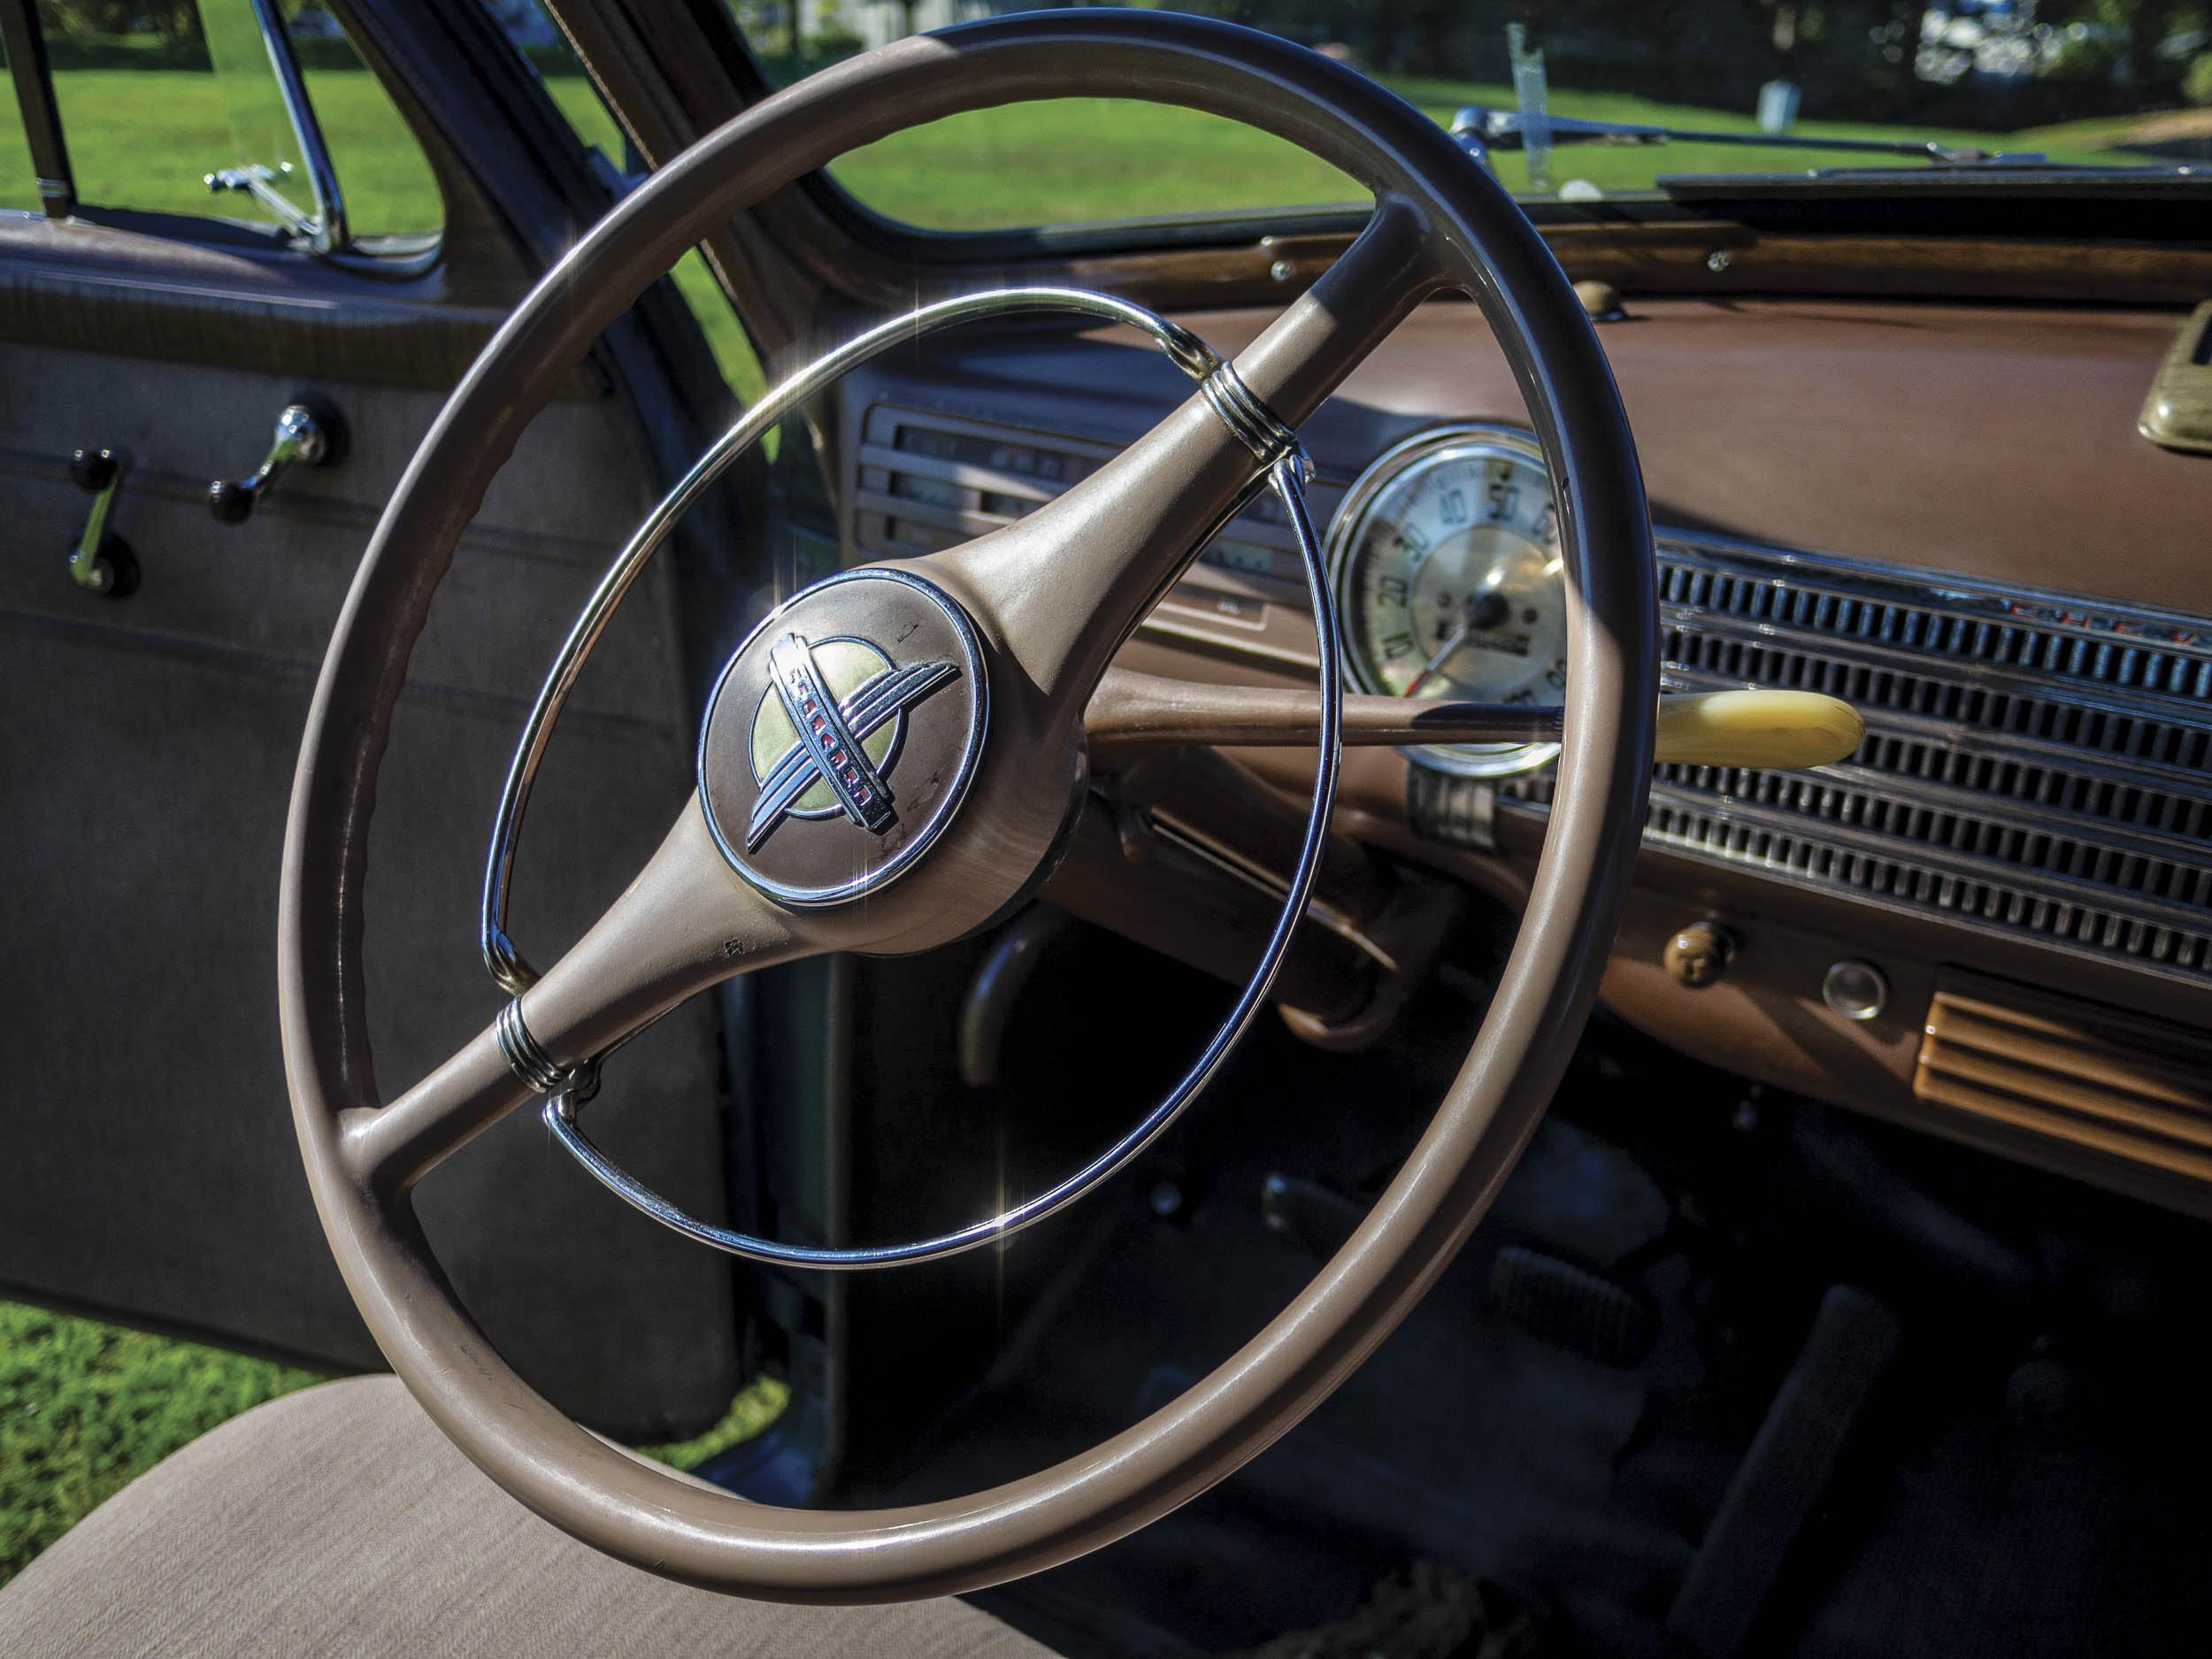 The Chevy's original interior wears a lovely patina that complements the one on its exterior. It's clear the car meant a great deal to its original owner, Martha Wilson.